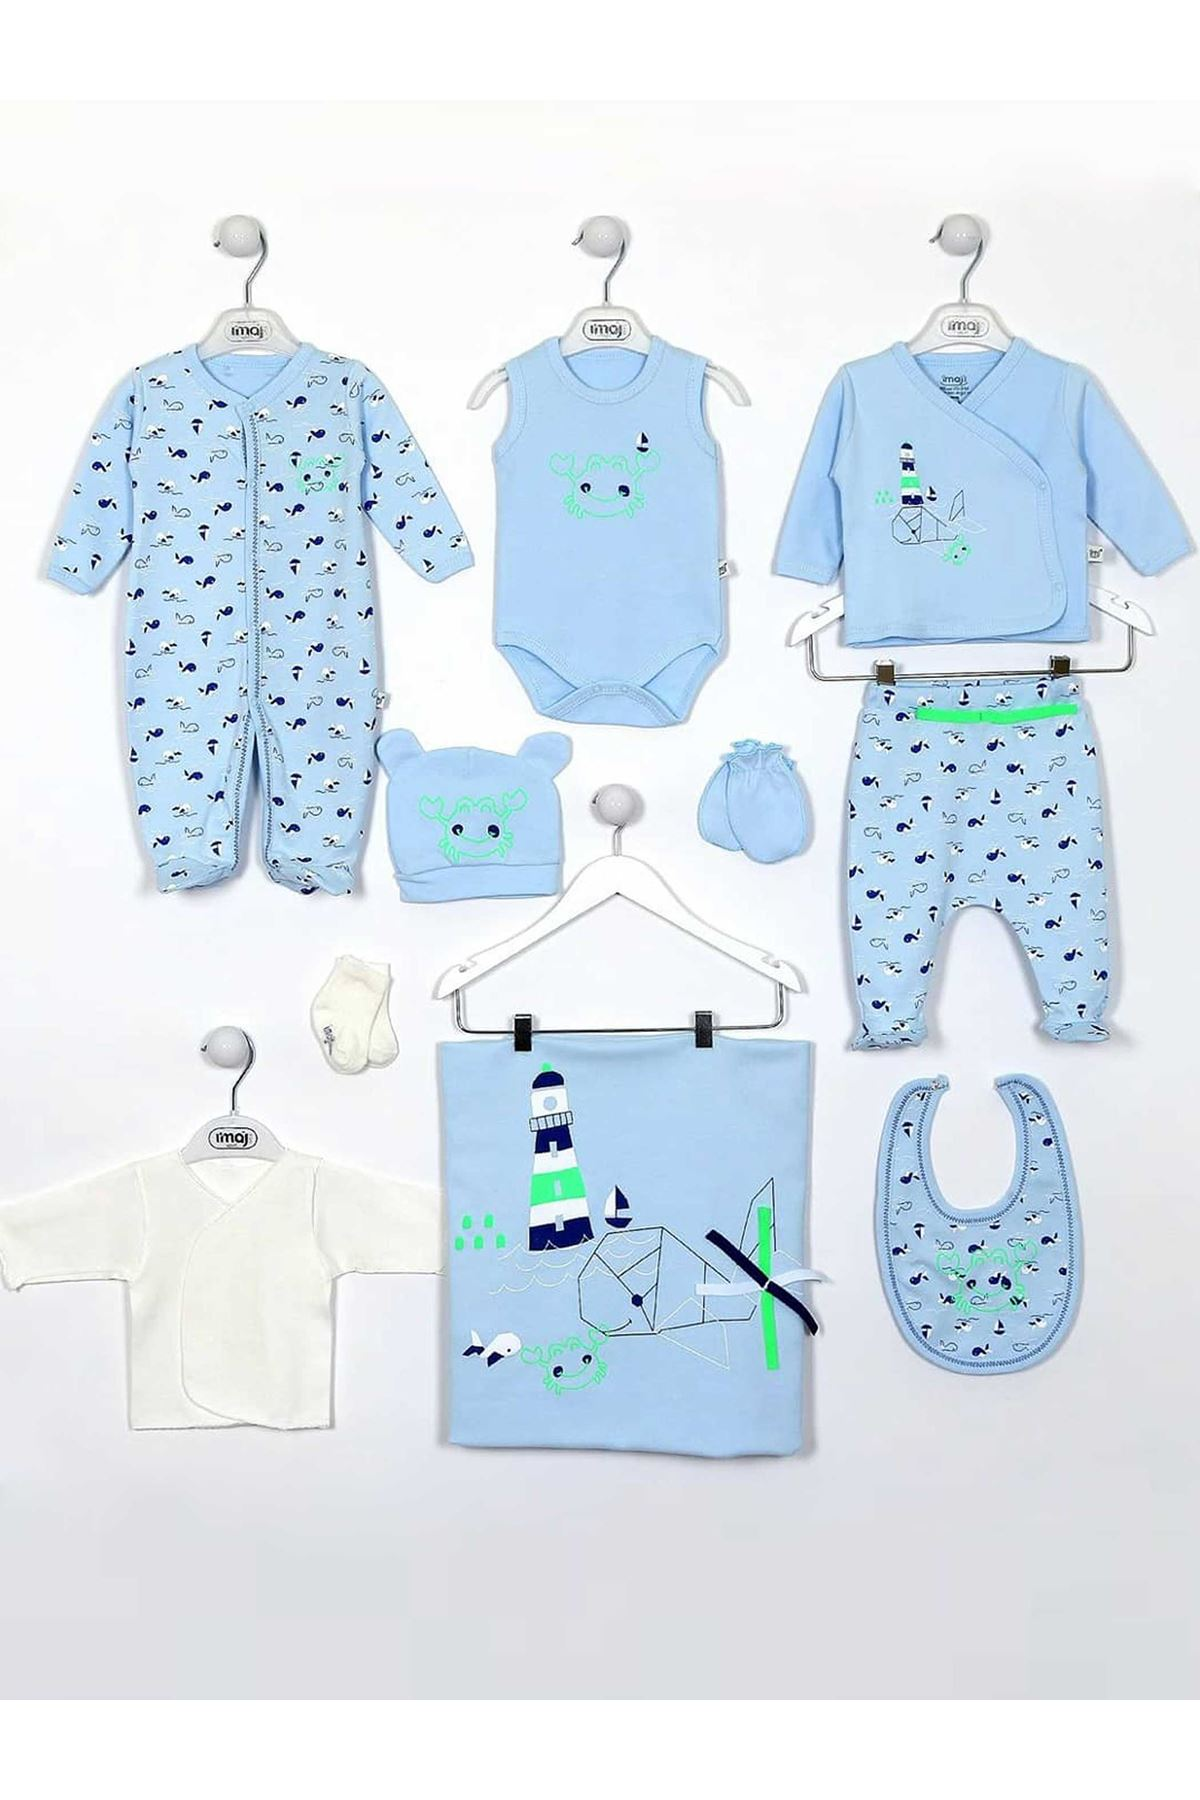 Blue Newborn Baby Boy 10 piece suit set cotton Hospital Outlet daily casual Babies clothes style fashion models